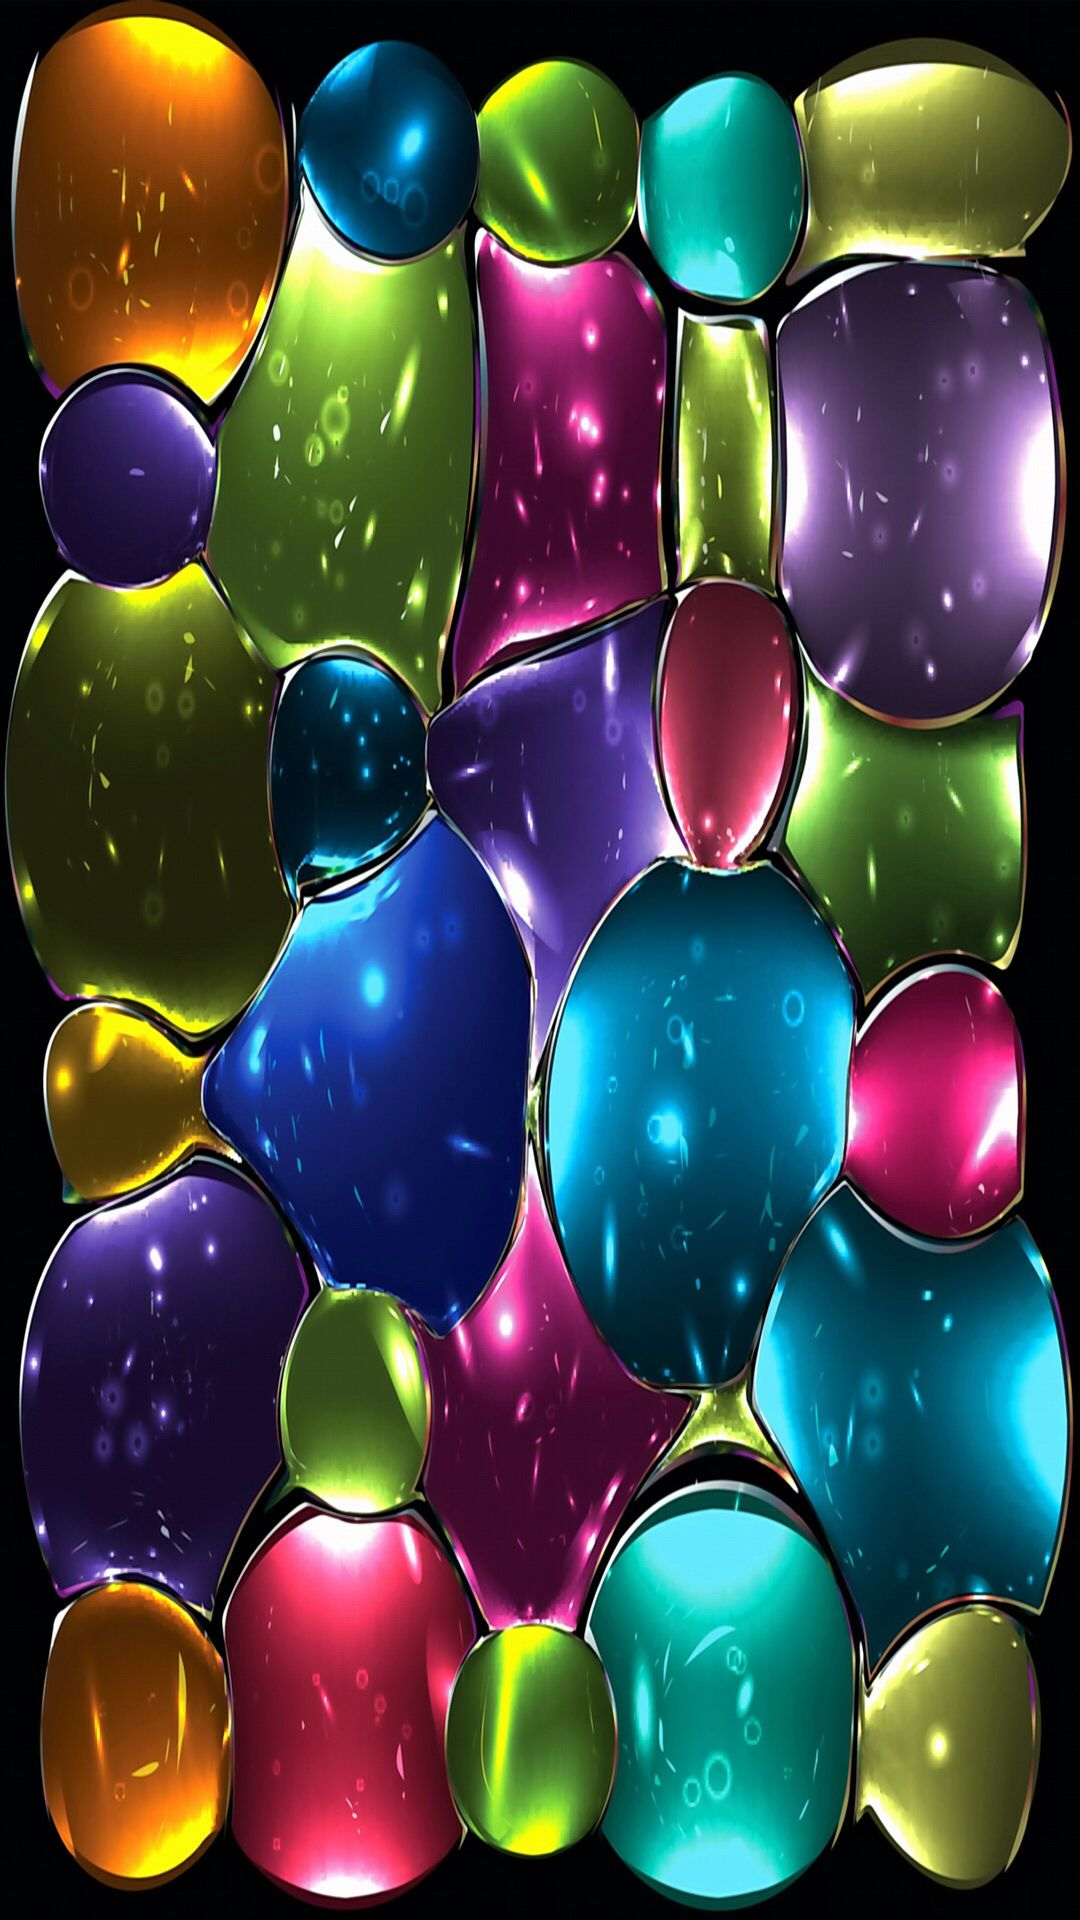 Cool Zedge Phone Wallpaper in 2020 Mosaic wallpaper